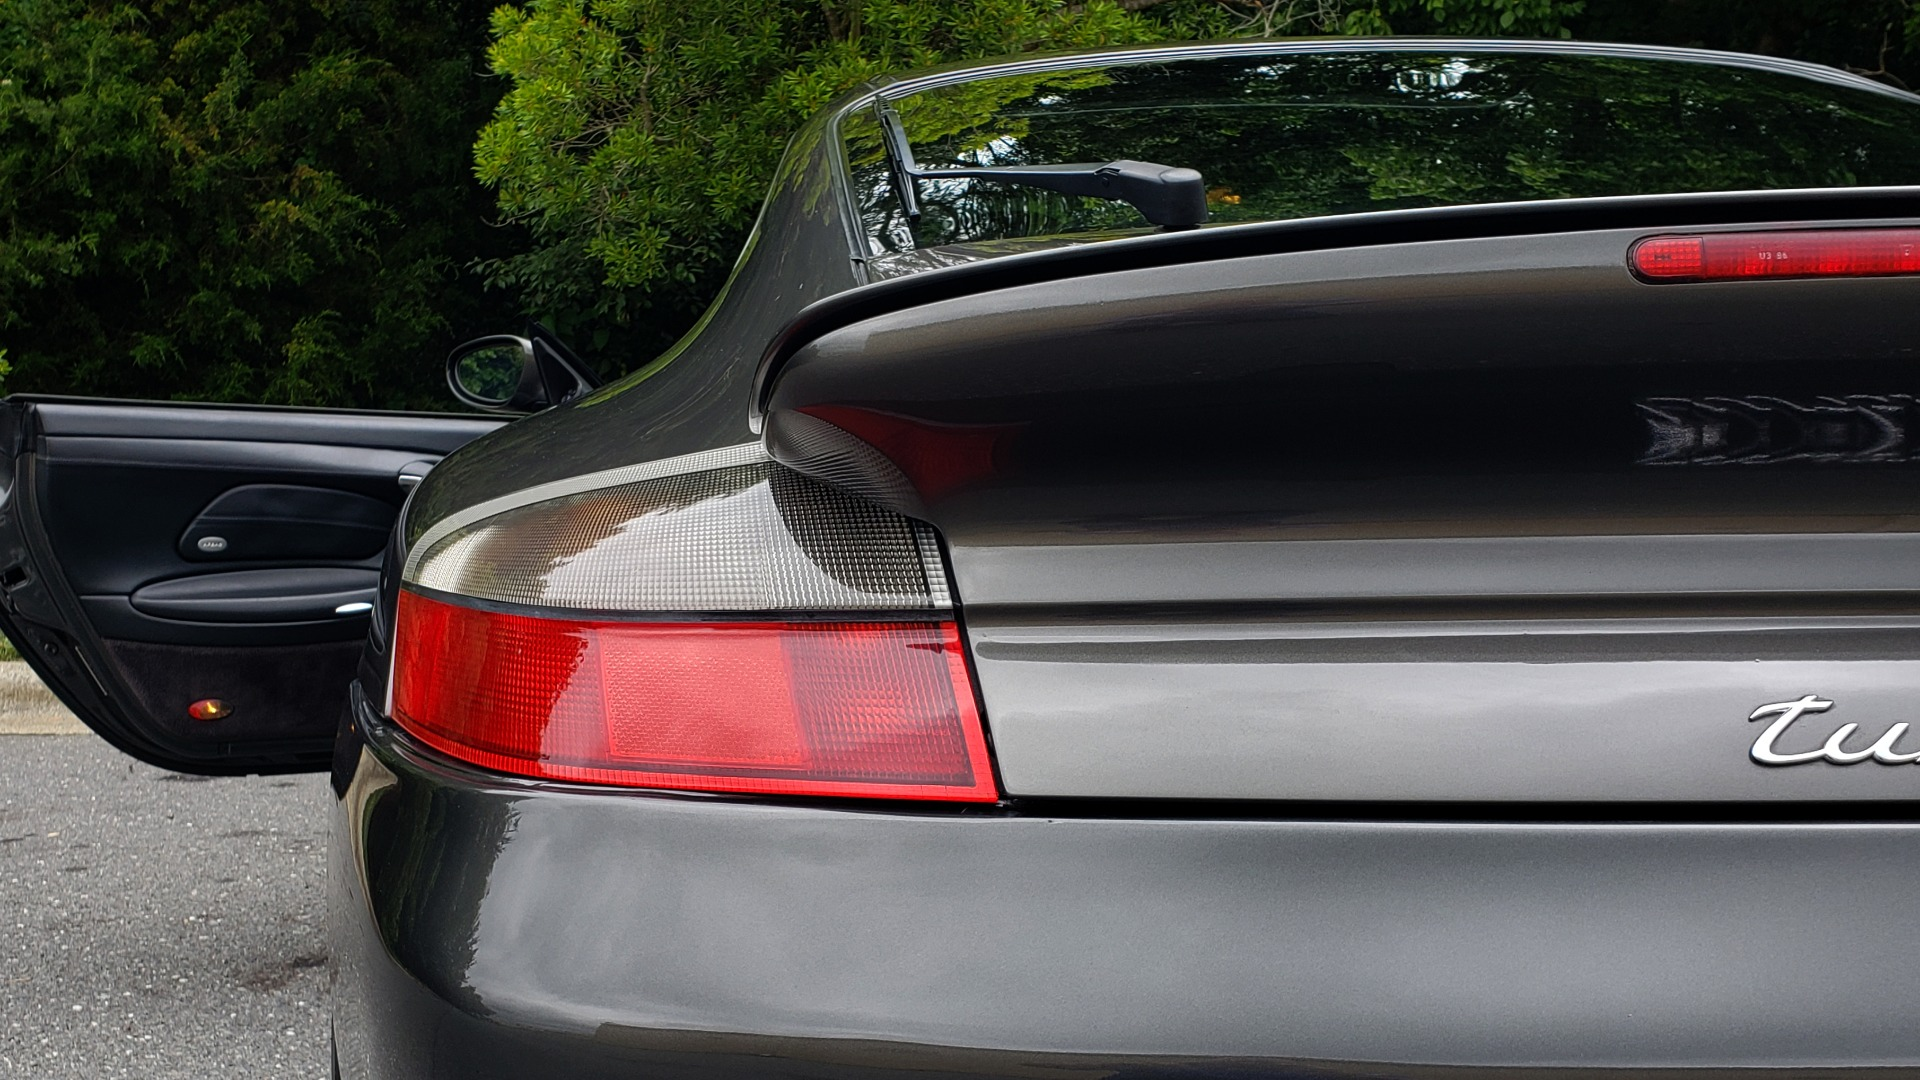 Used 2002 Porsche 911 CARRERA TURBO / 6-SPD MAN / ALPINE / BOSE / PERF UPGRADES for sale $53,995 at Formula Imports in Charlotte NC 28227 47